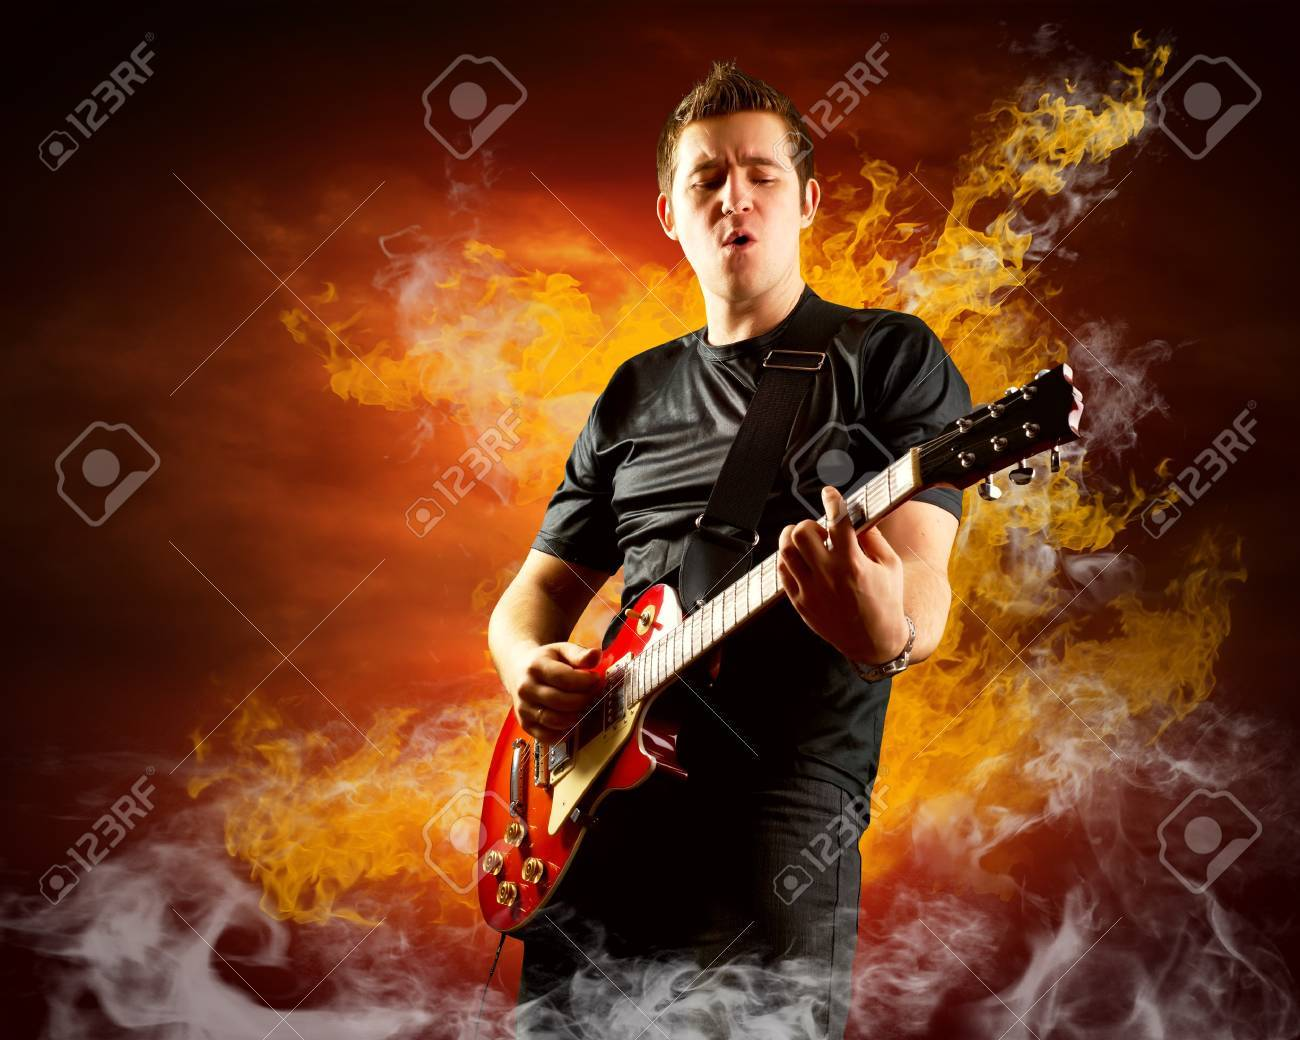 Rock guitarist play on the electric guitar around fire flames Stock Photo - 11988884